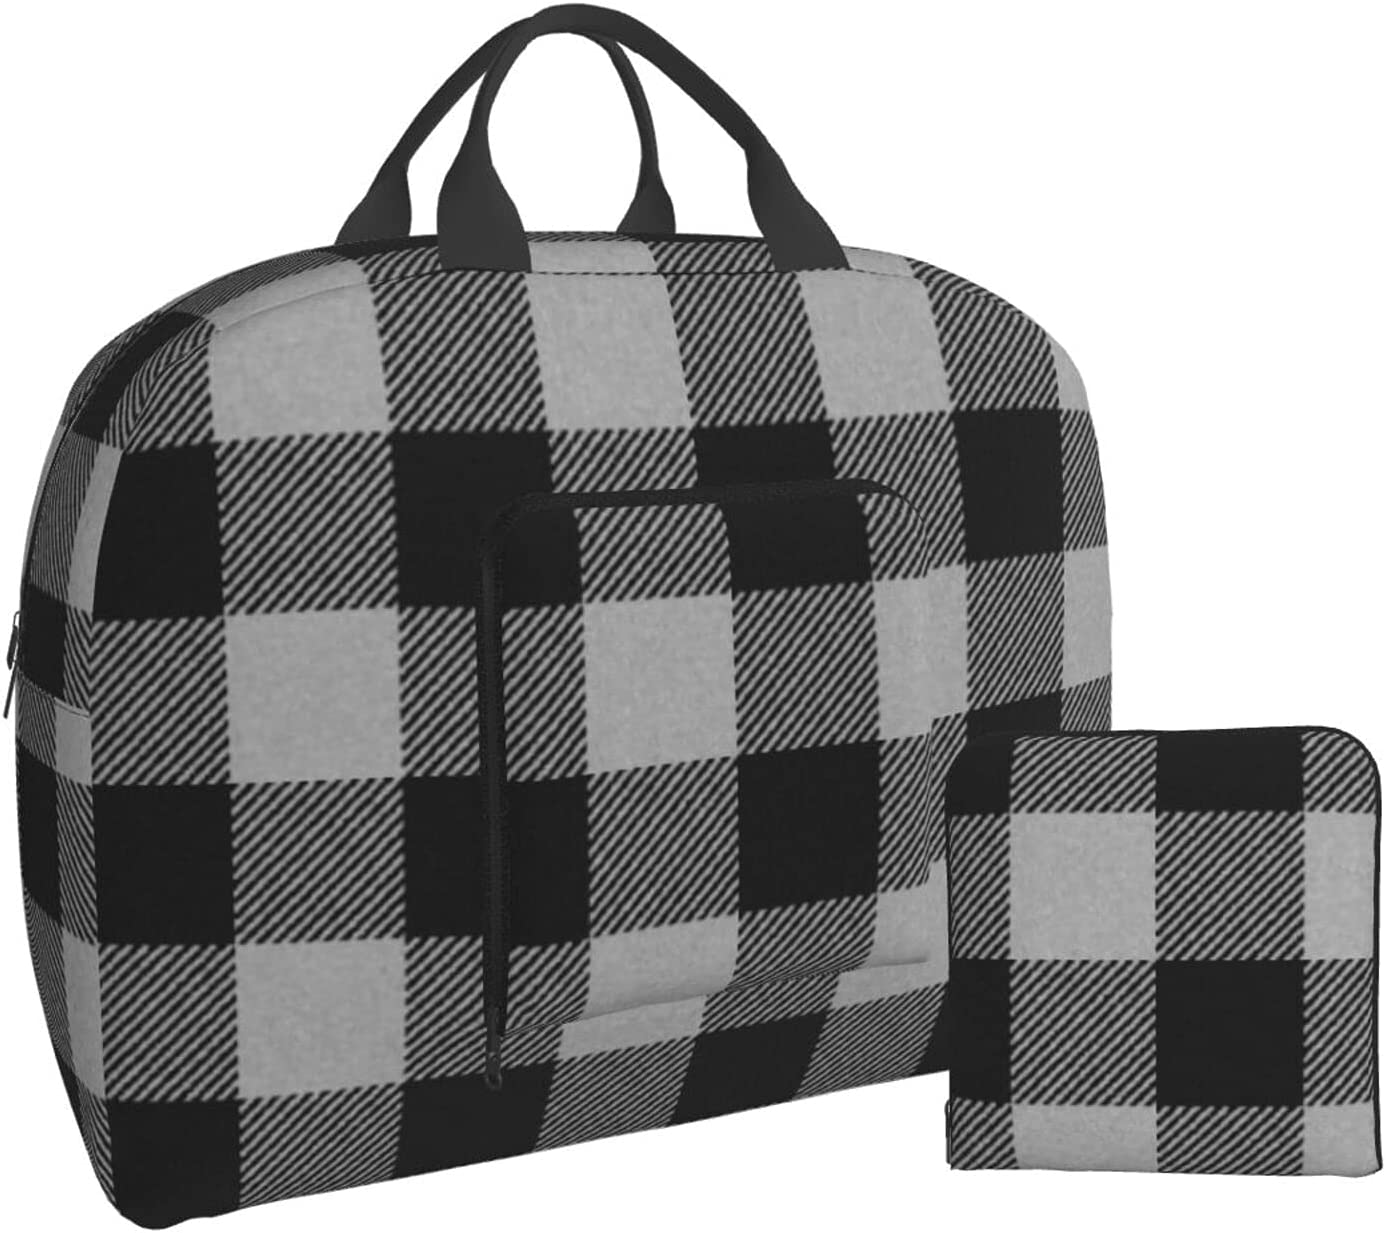 Black and White Plaid Buffalo Excellent Austin Mall Foldable Bag Travel O Duffle Carry